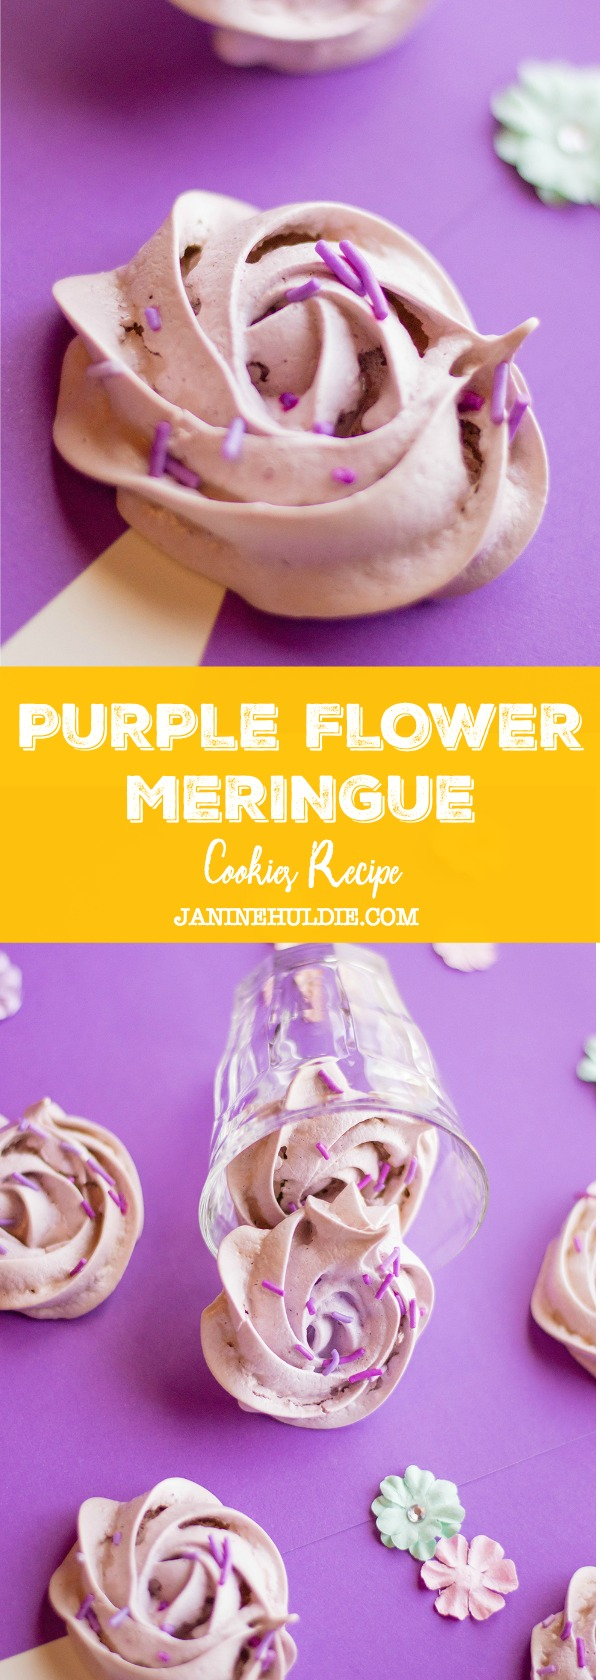 Purple Flower Meringue Cookies Recipe